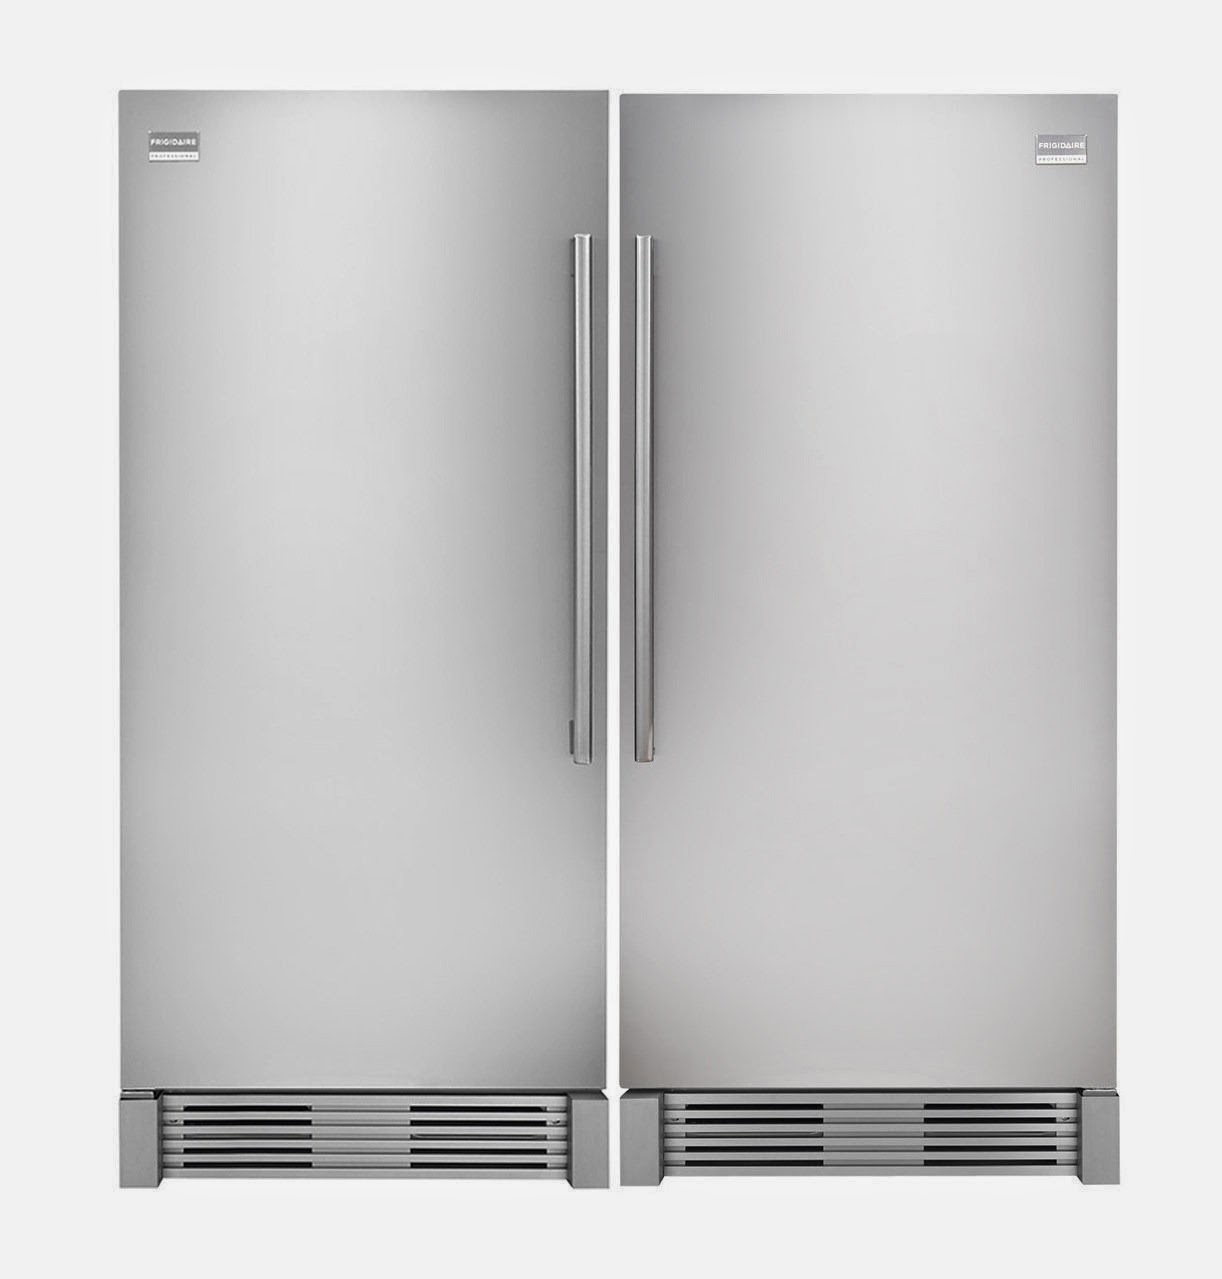 Image Result For Commercial Refrigerator Freezer For Home Use